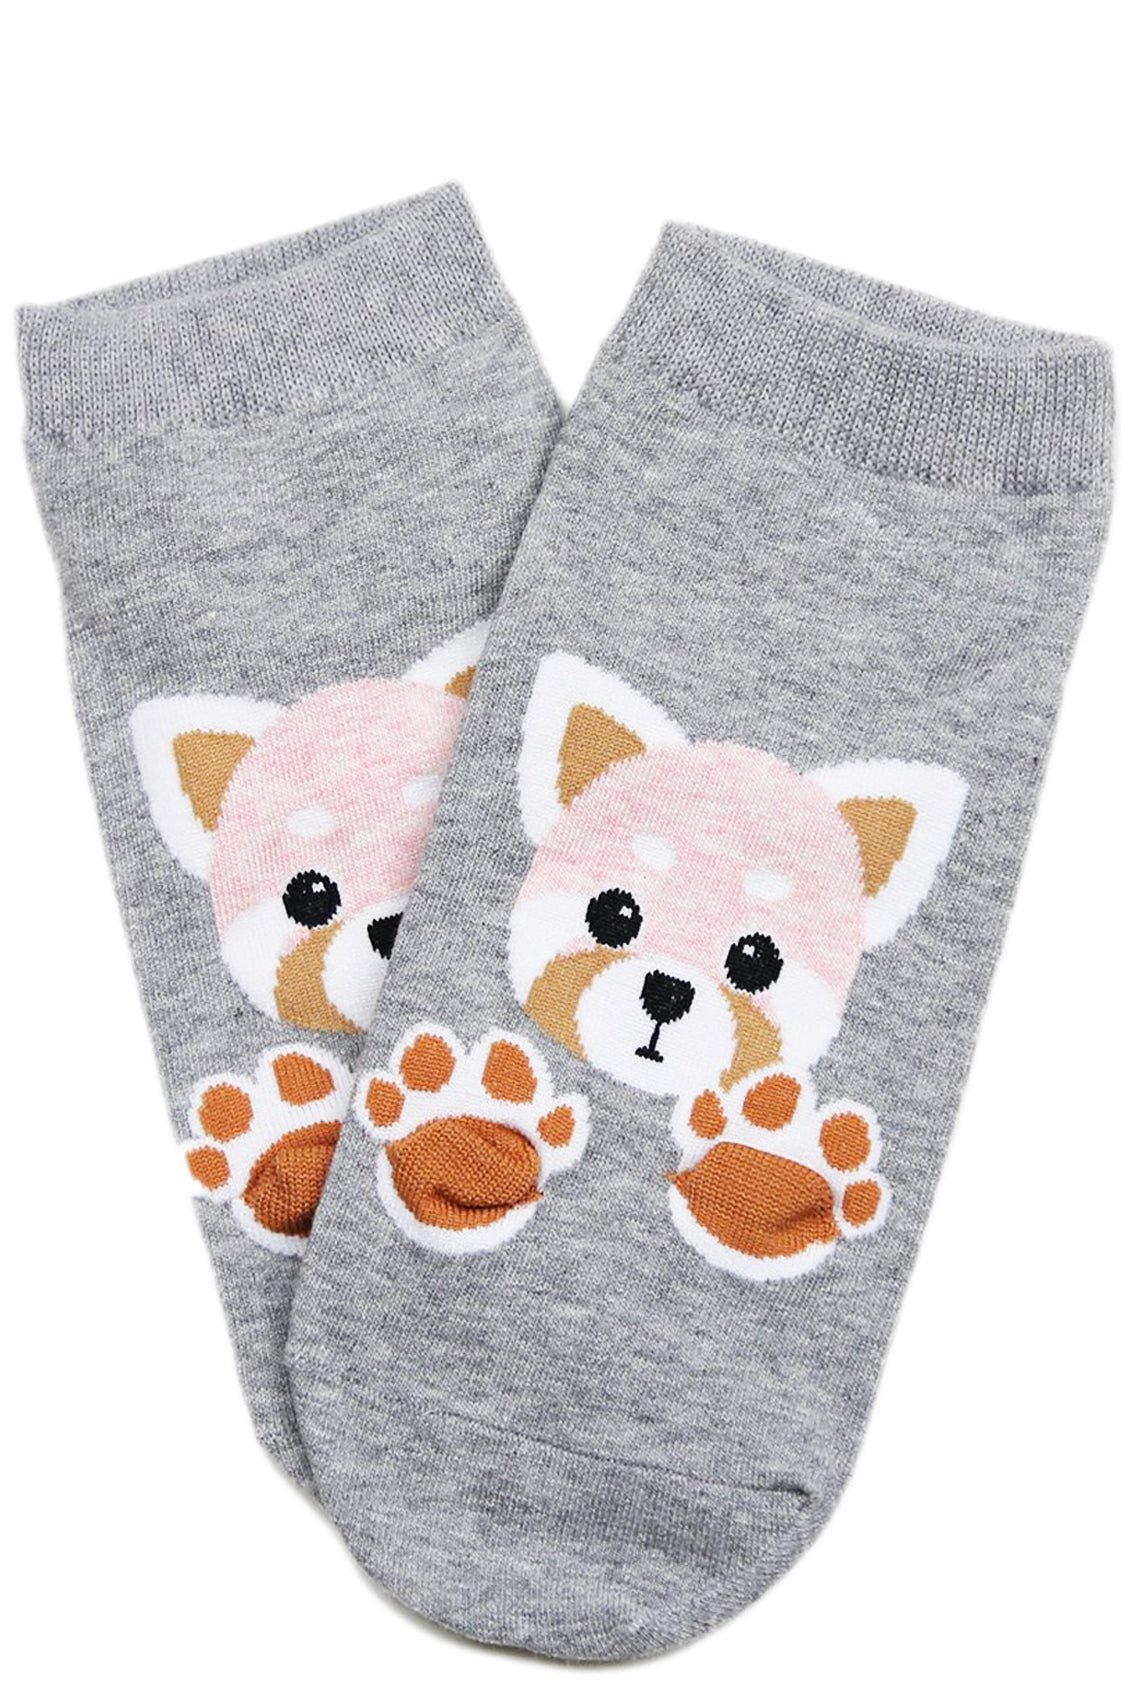 Paws Out Cotton Ankle Socks Grey